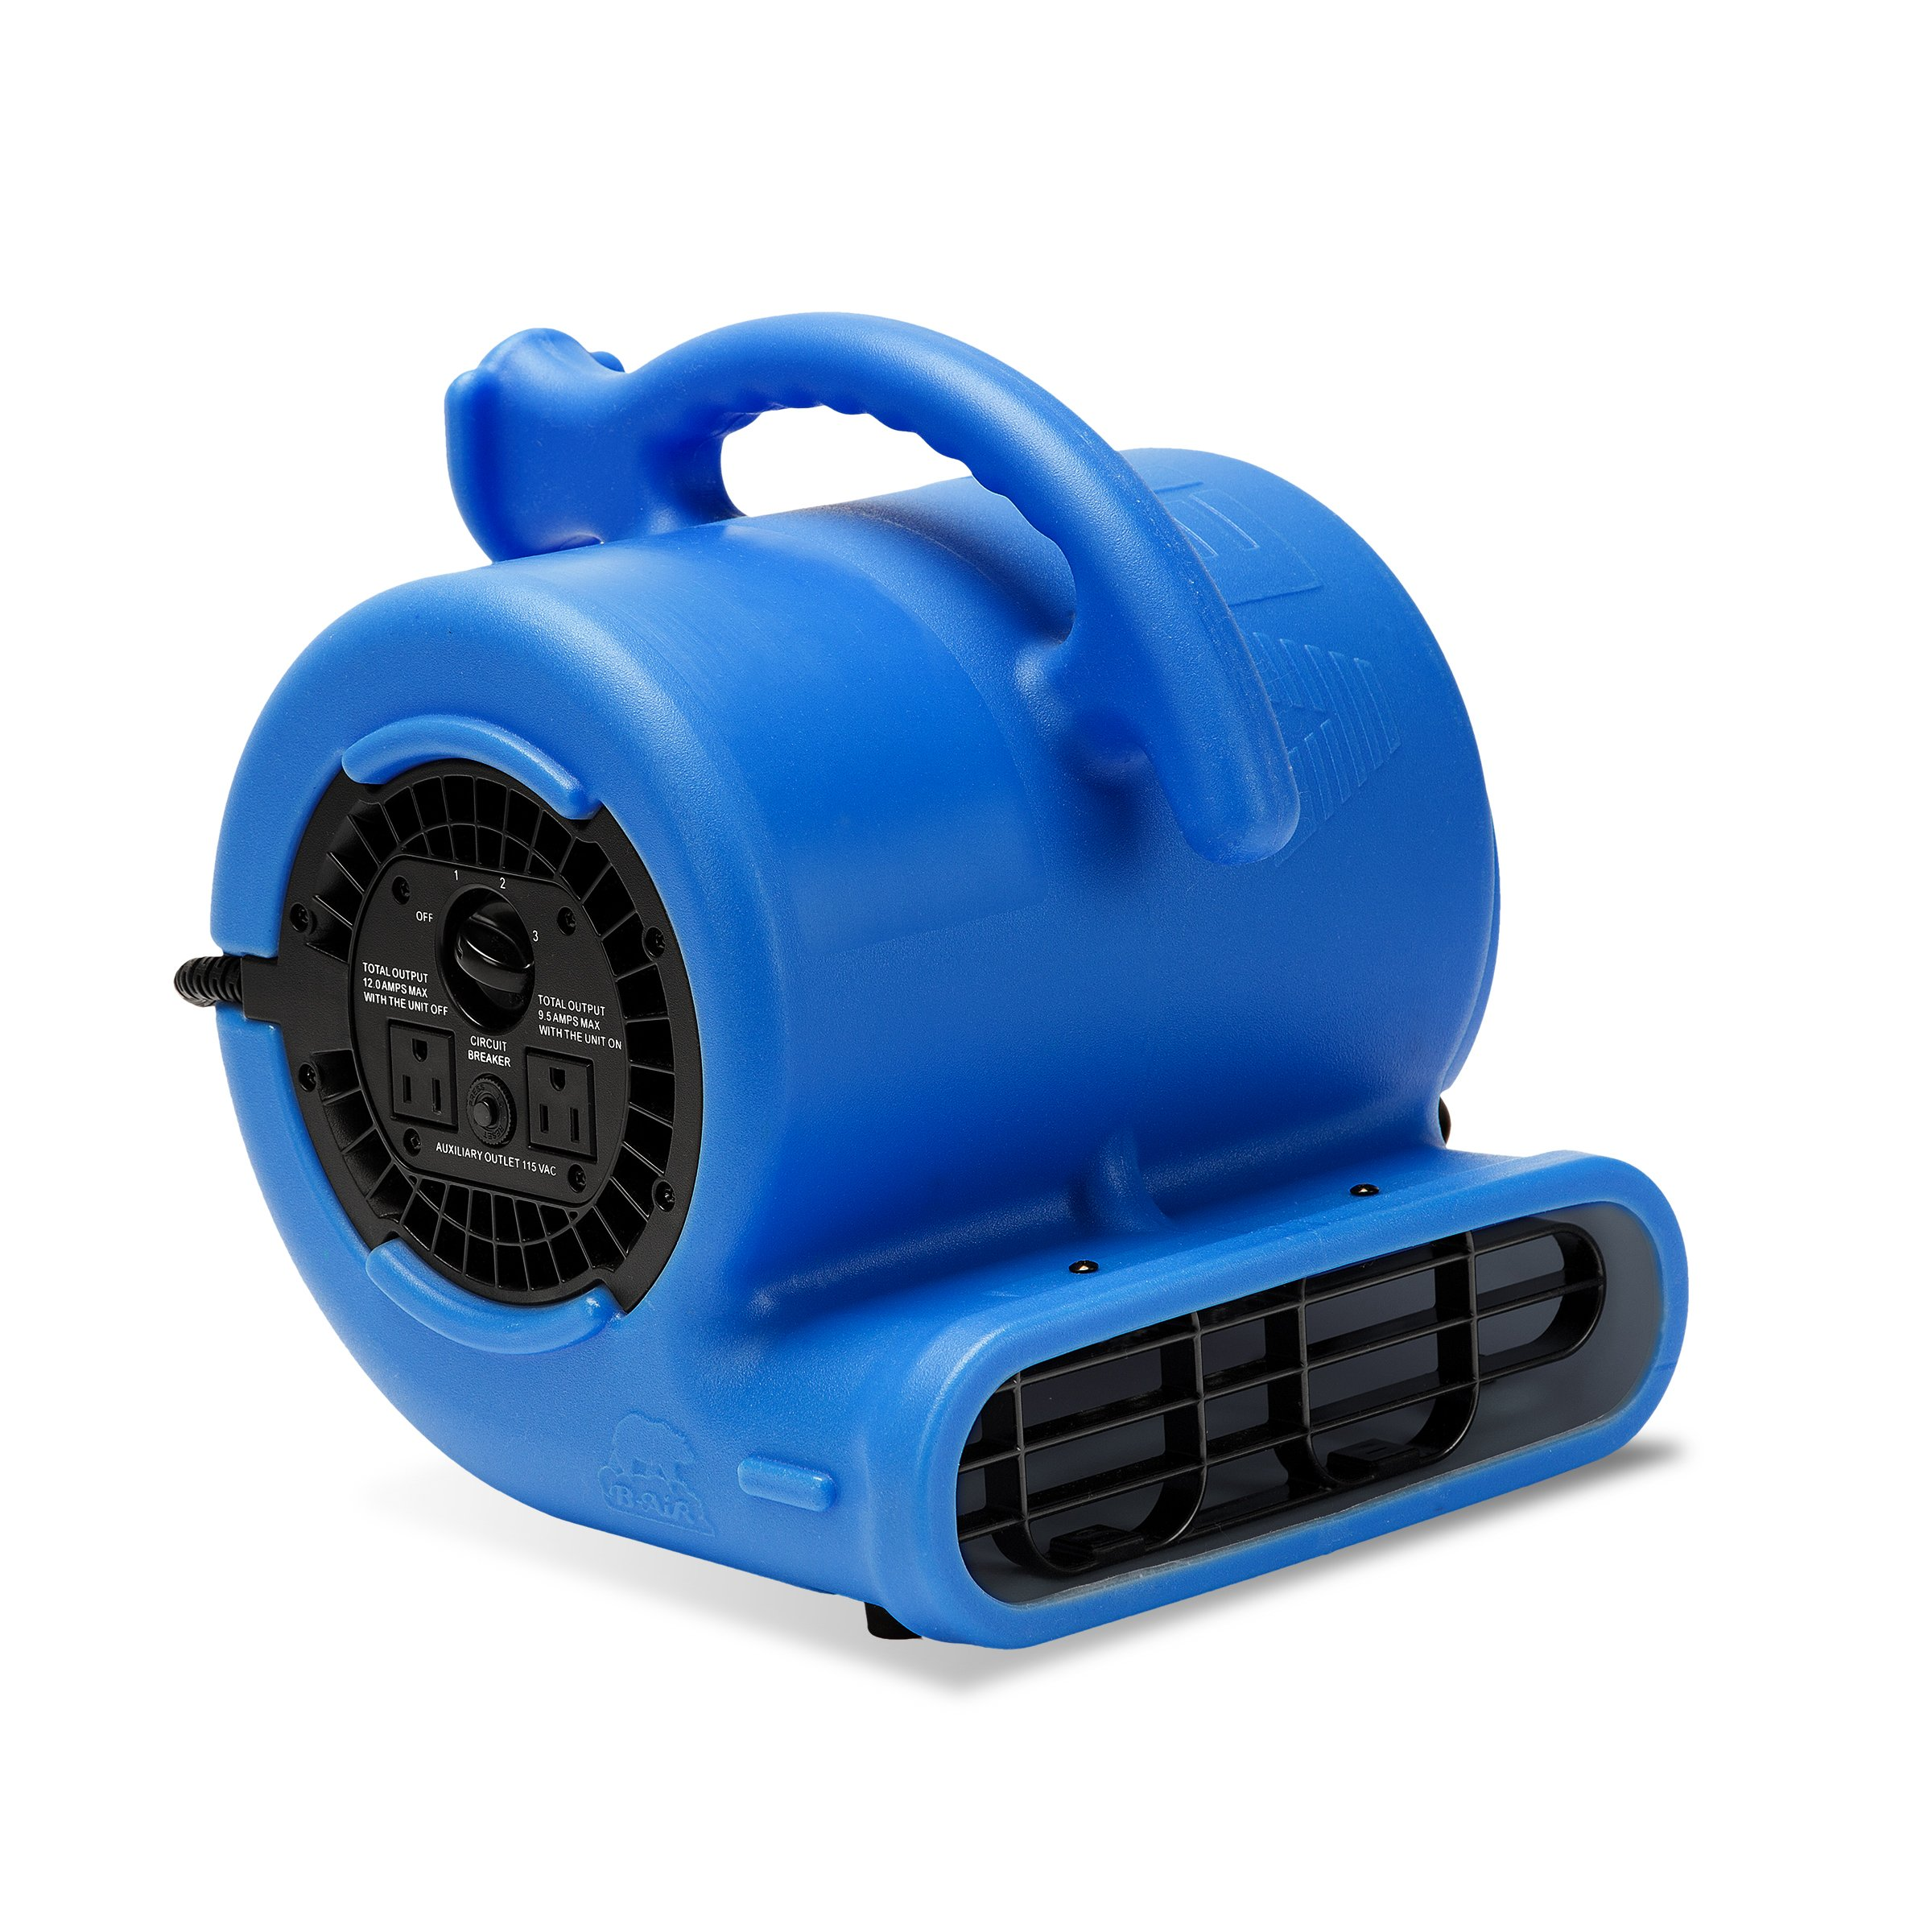 B-Air VP-25 1/4 HP 900 CFM Air Mover for Water Damage Restoration Carpet Dryer Floor Blower Fan Home and Plumbing Use, Blue